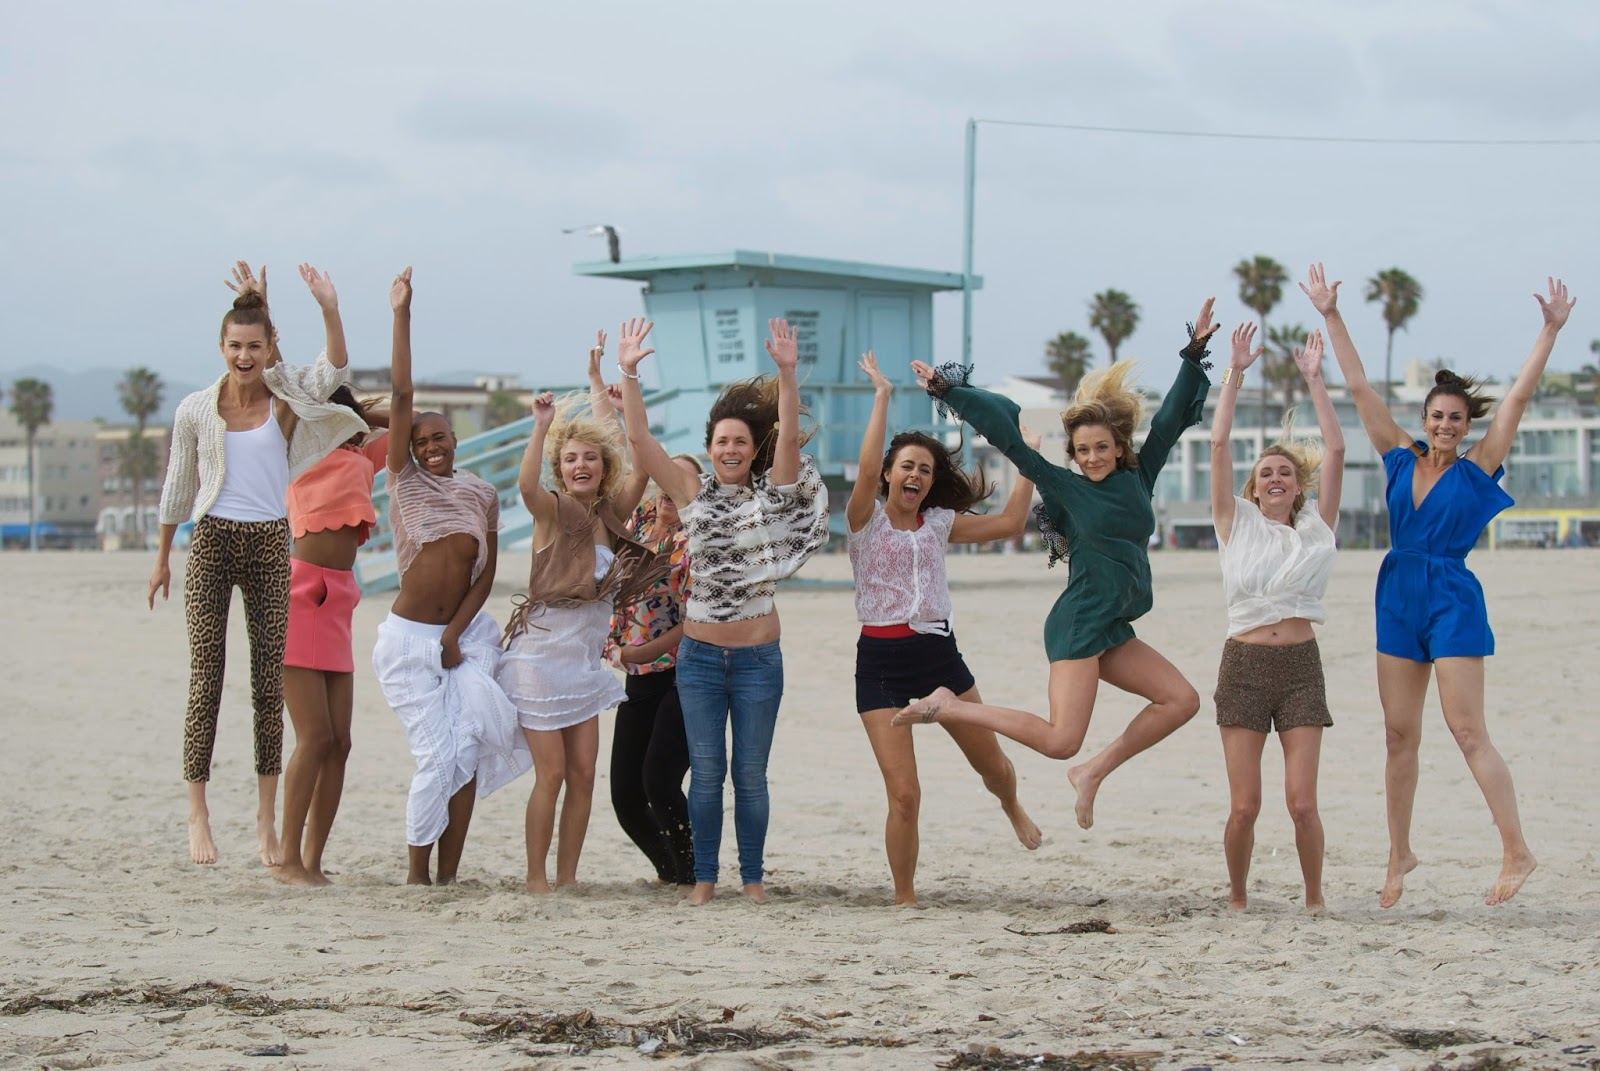 Photoshoot at Venice Beach for Elpromotions